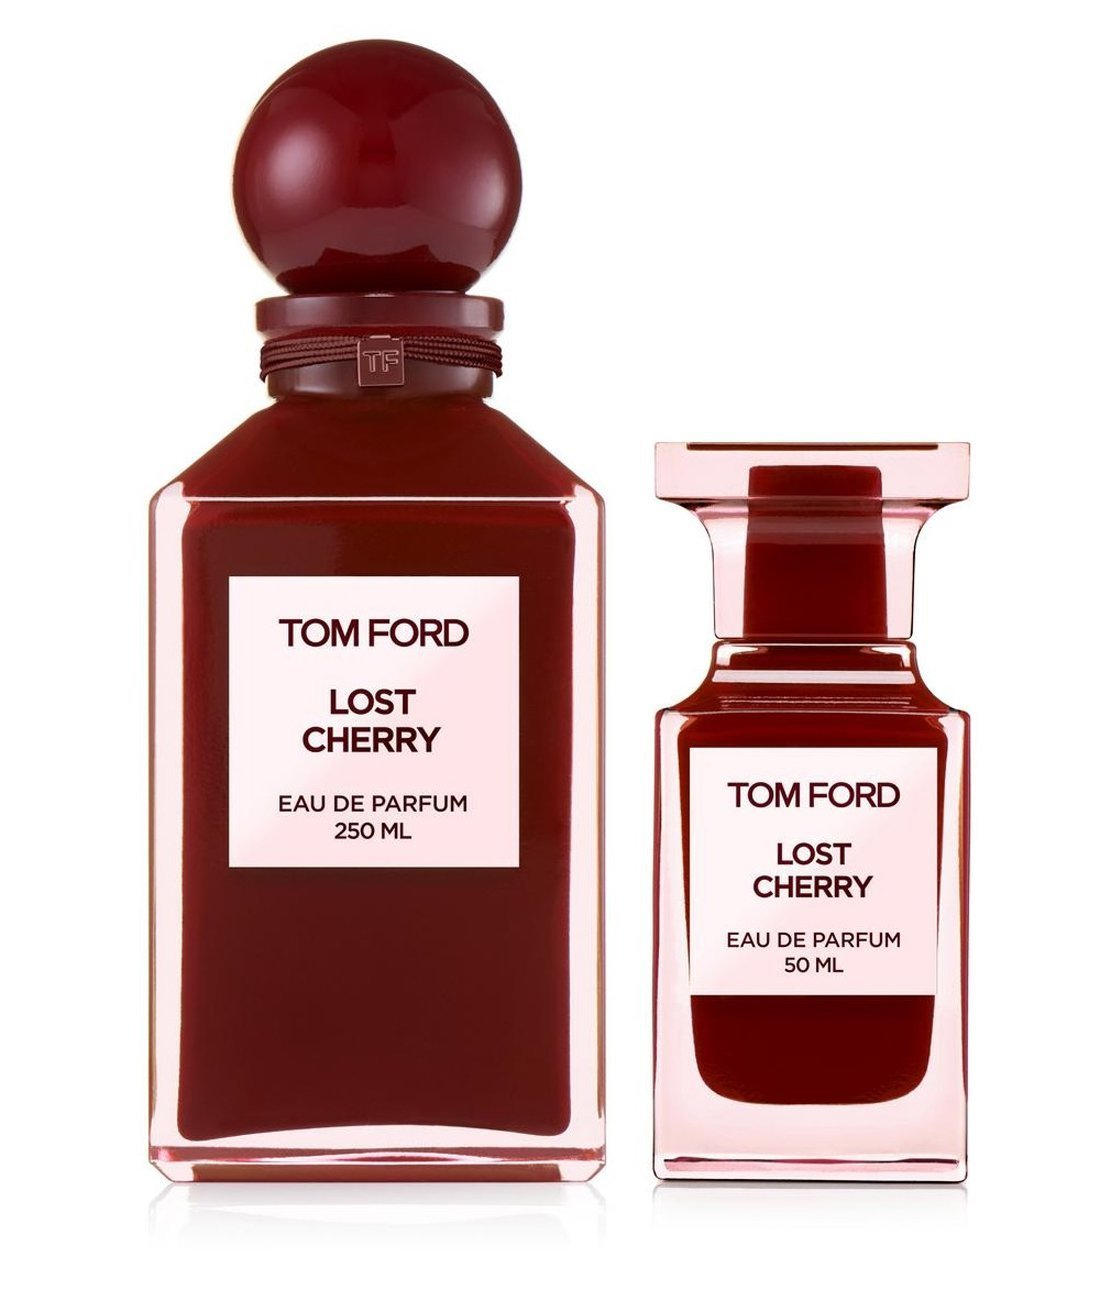 tom ford lost cherry reviews and rating